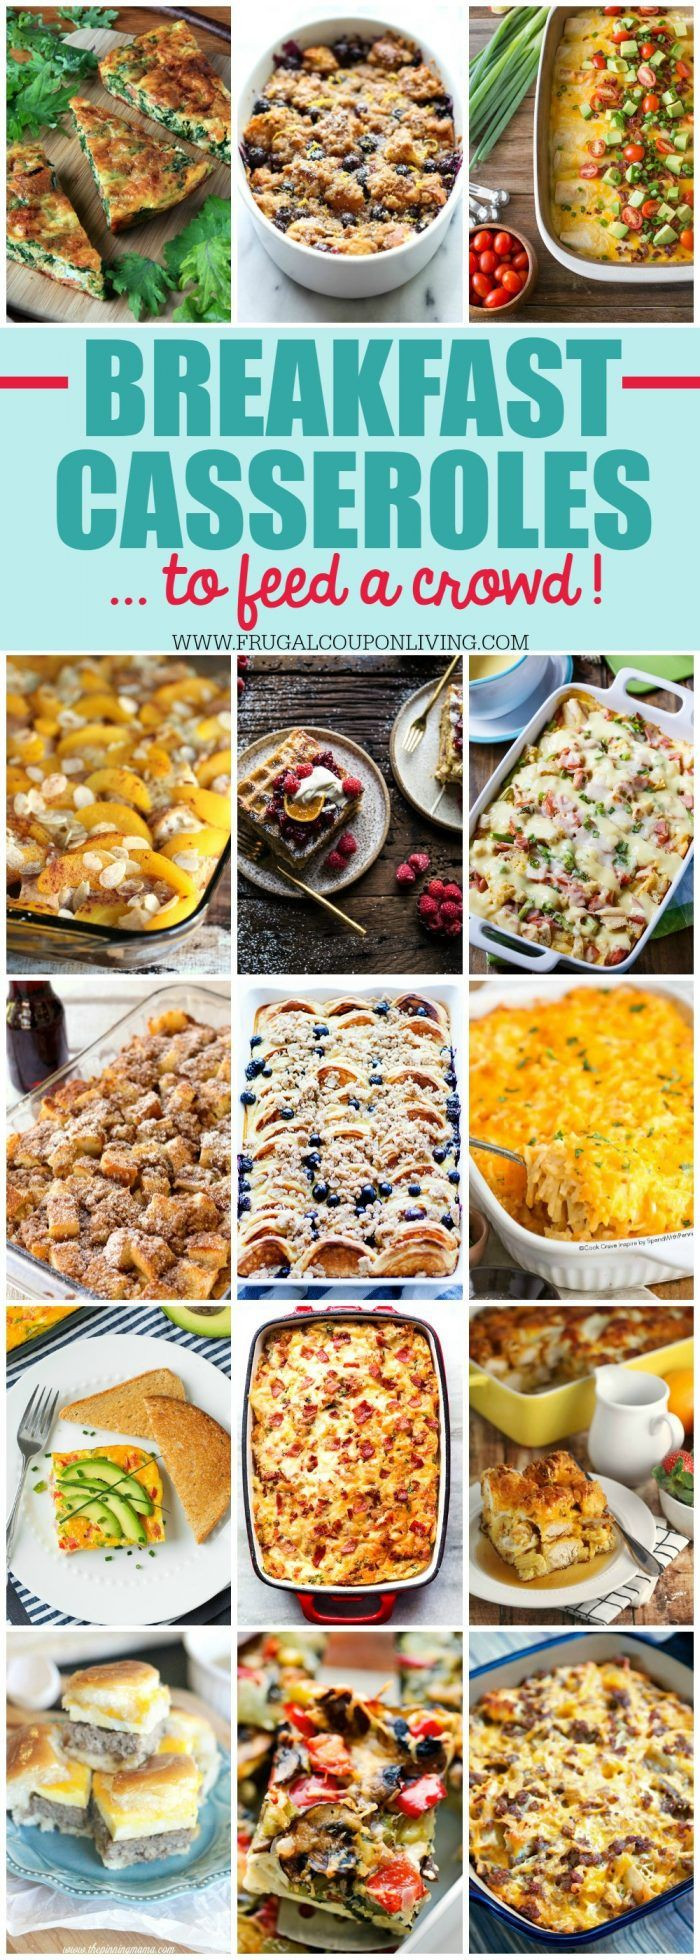 Christmas Party Menu Ideas For Large Groups  Breakfast Casseroles for a Crowd